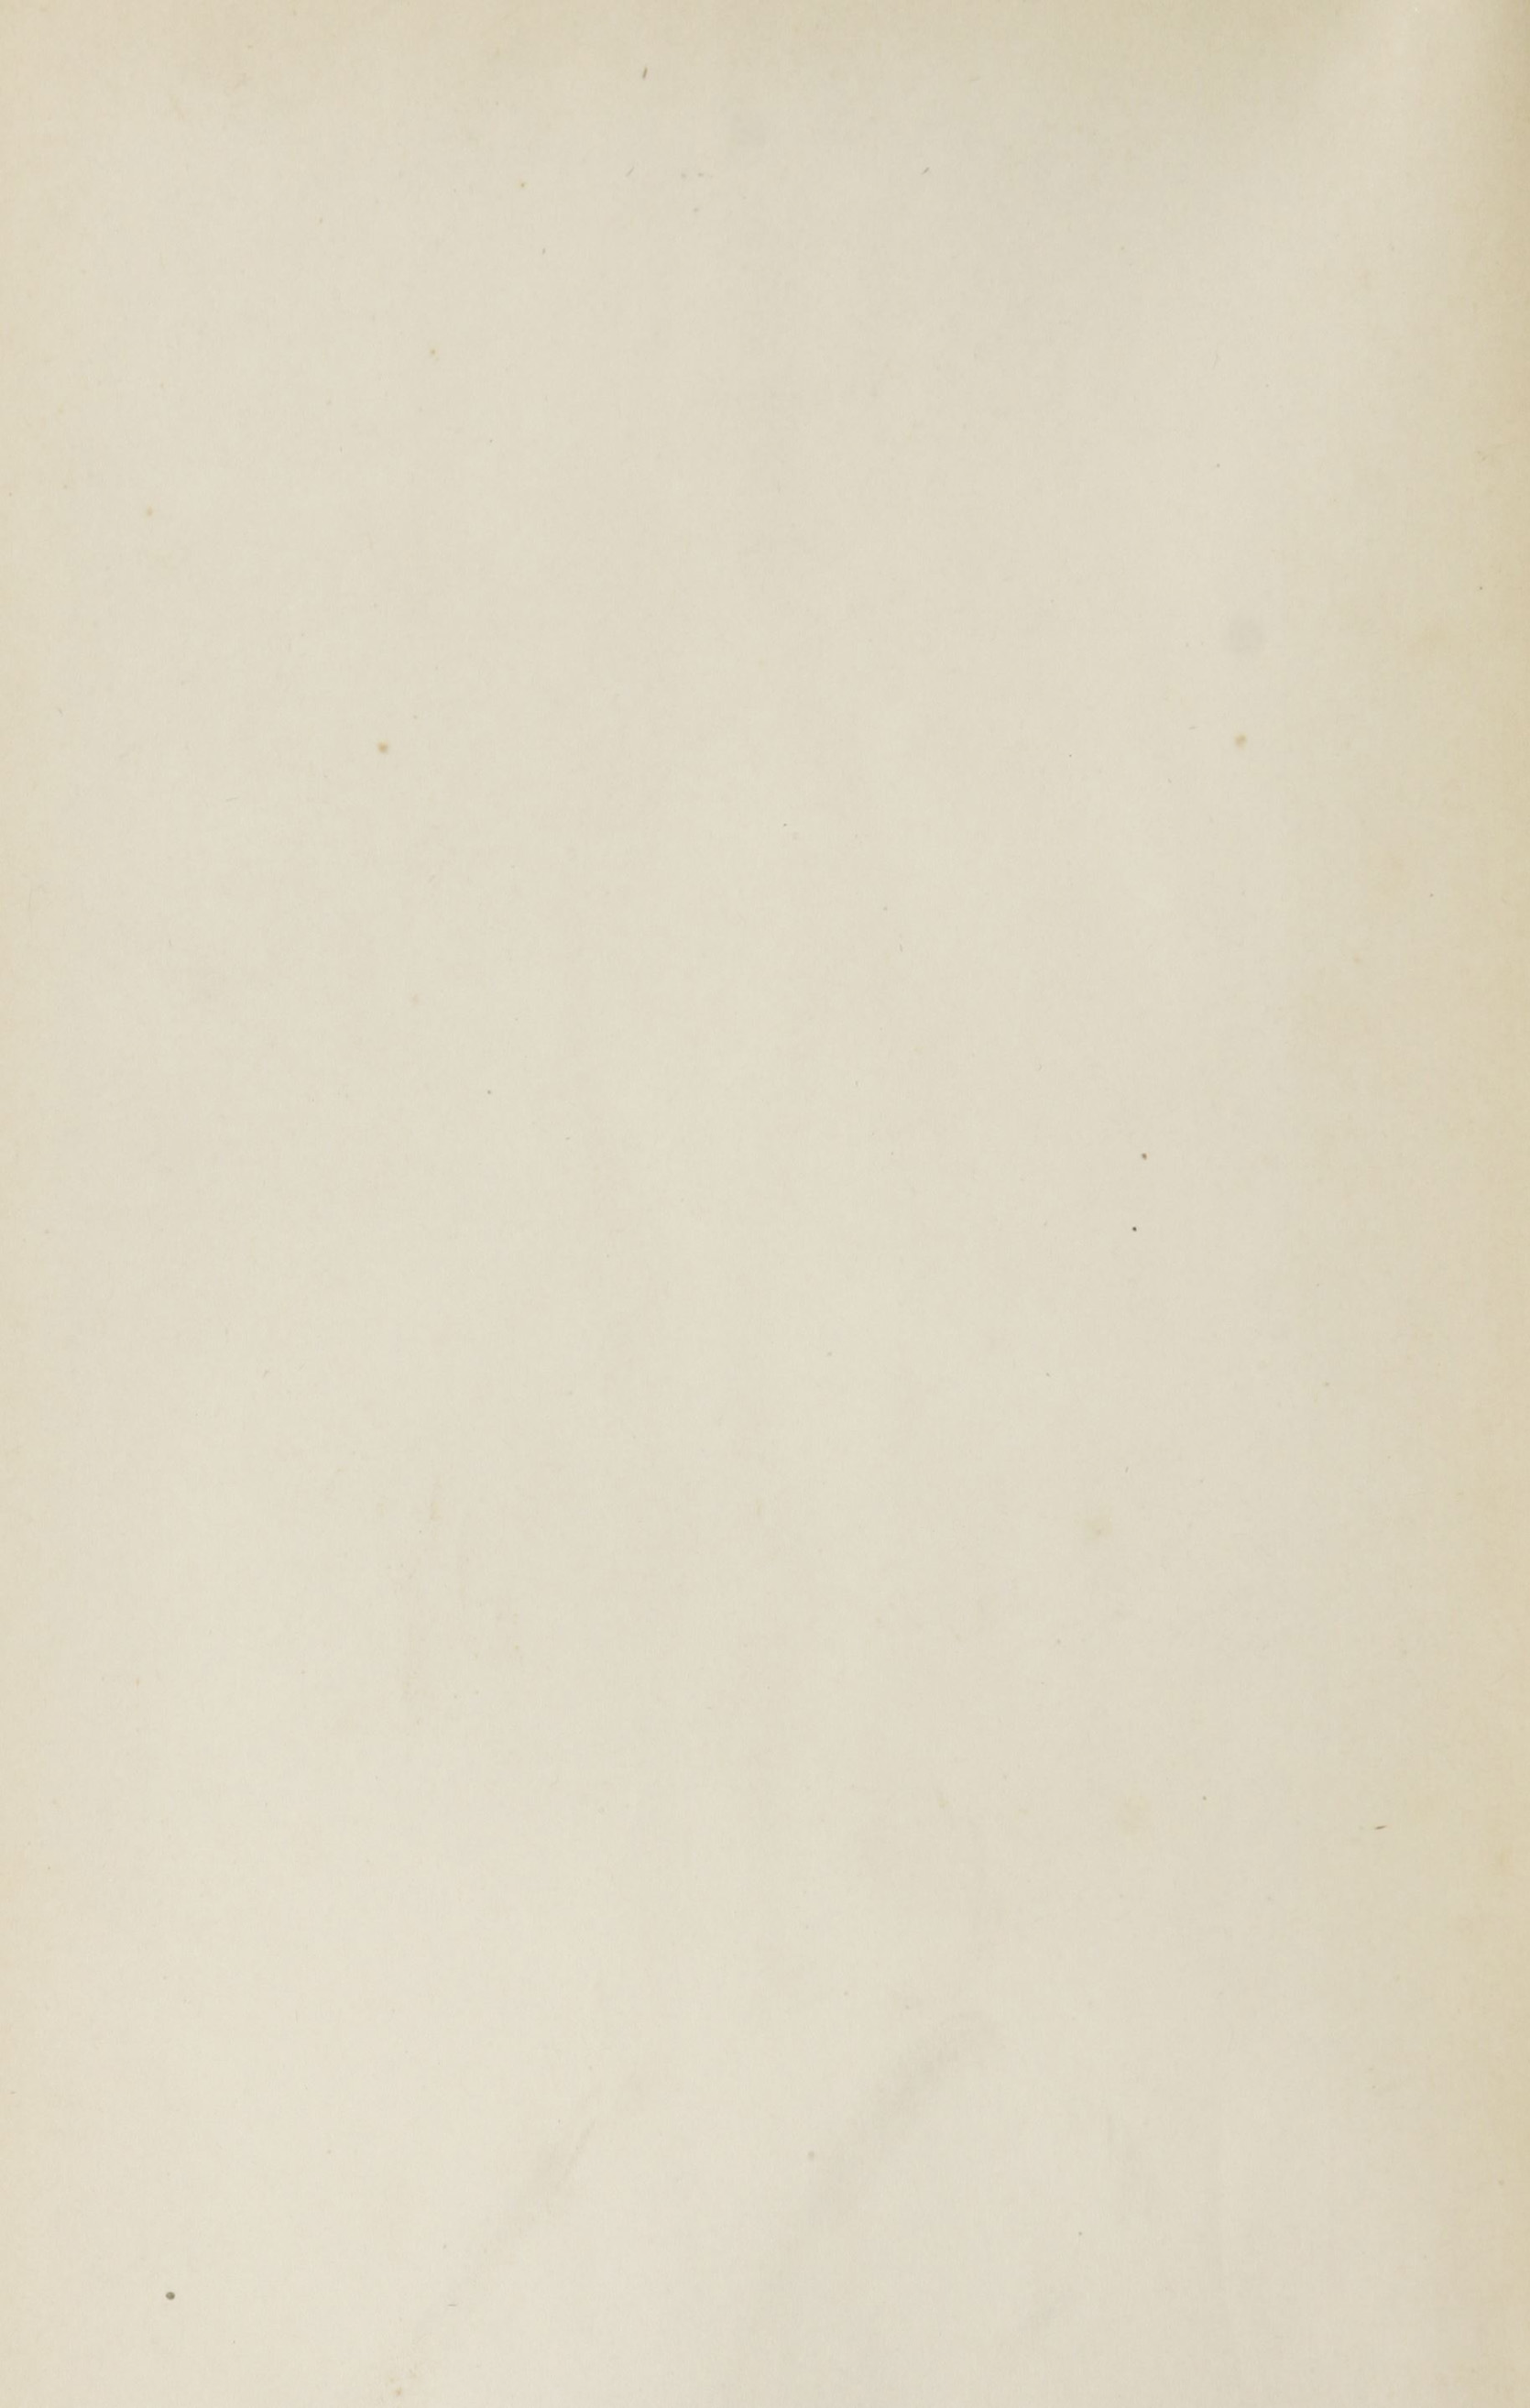 Charleston Yearbook, 1915, blank page